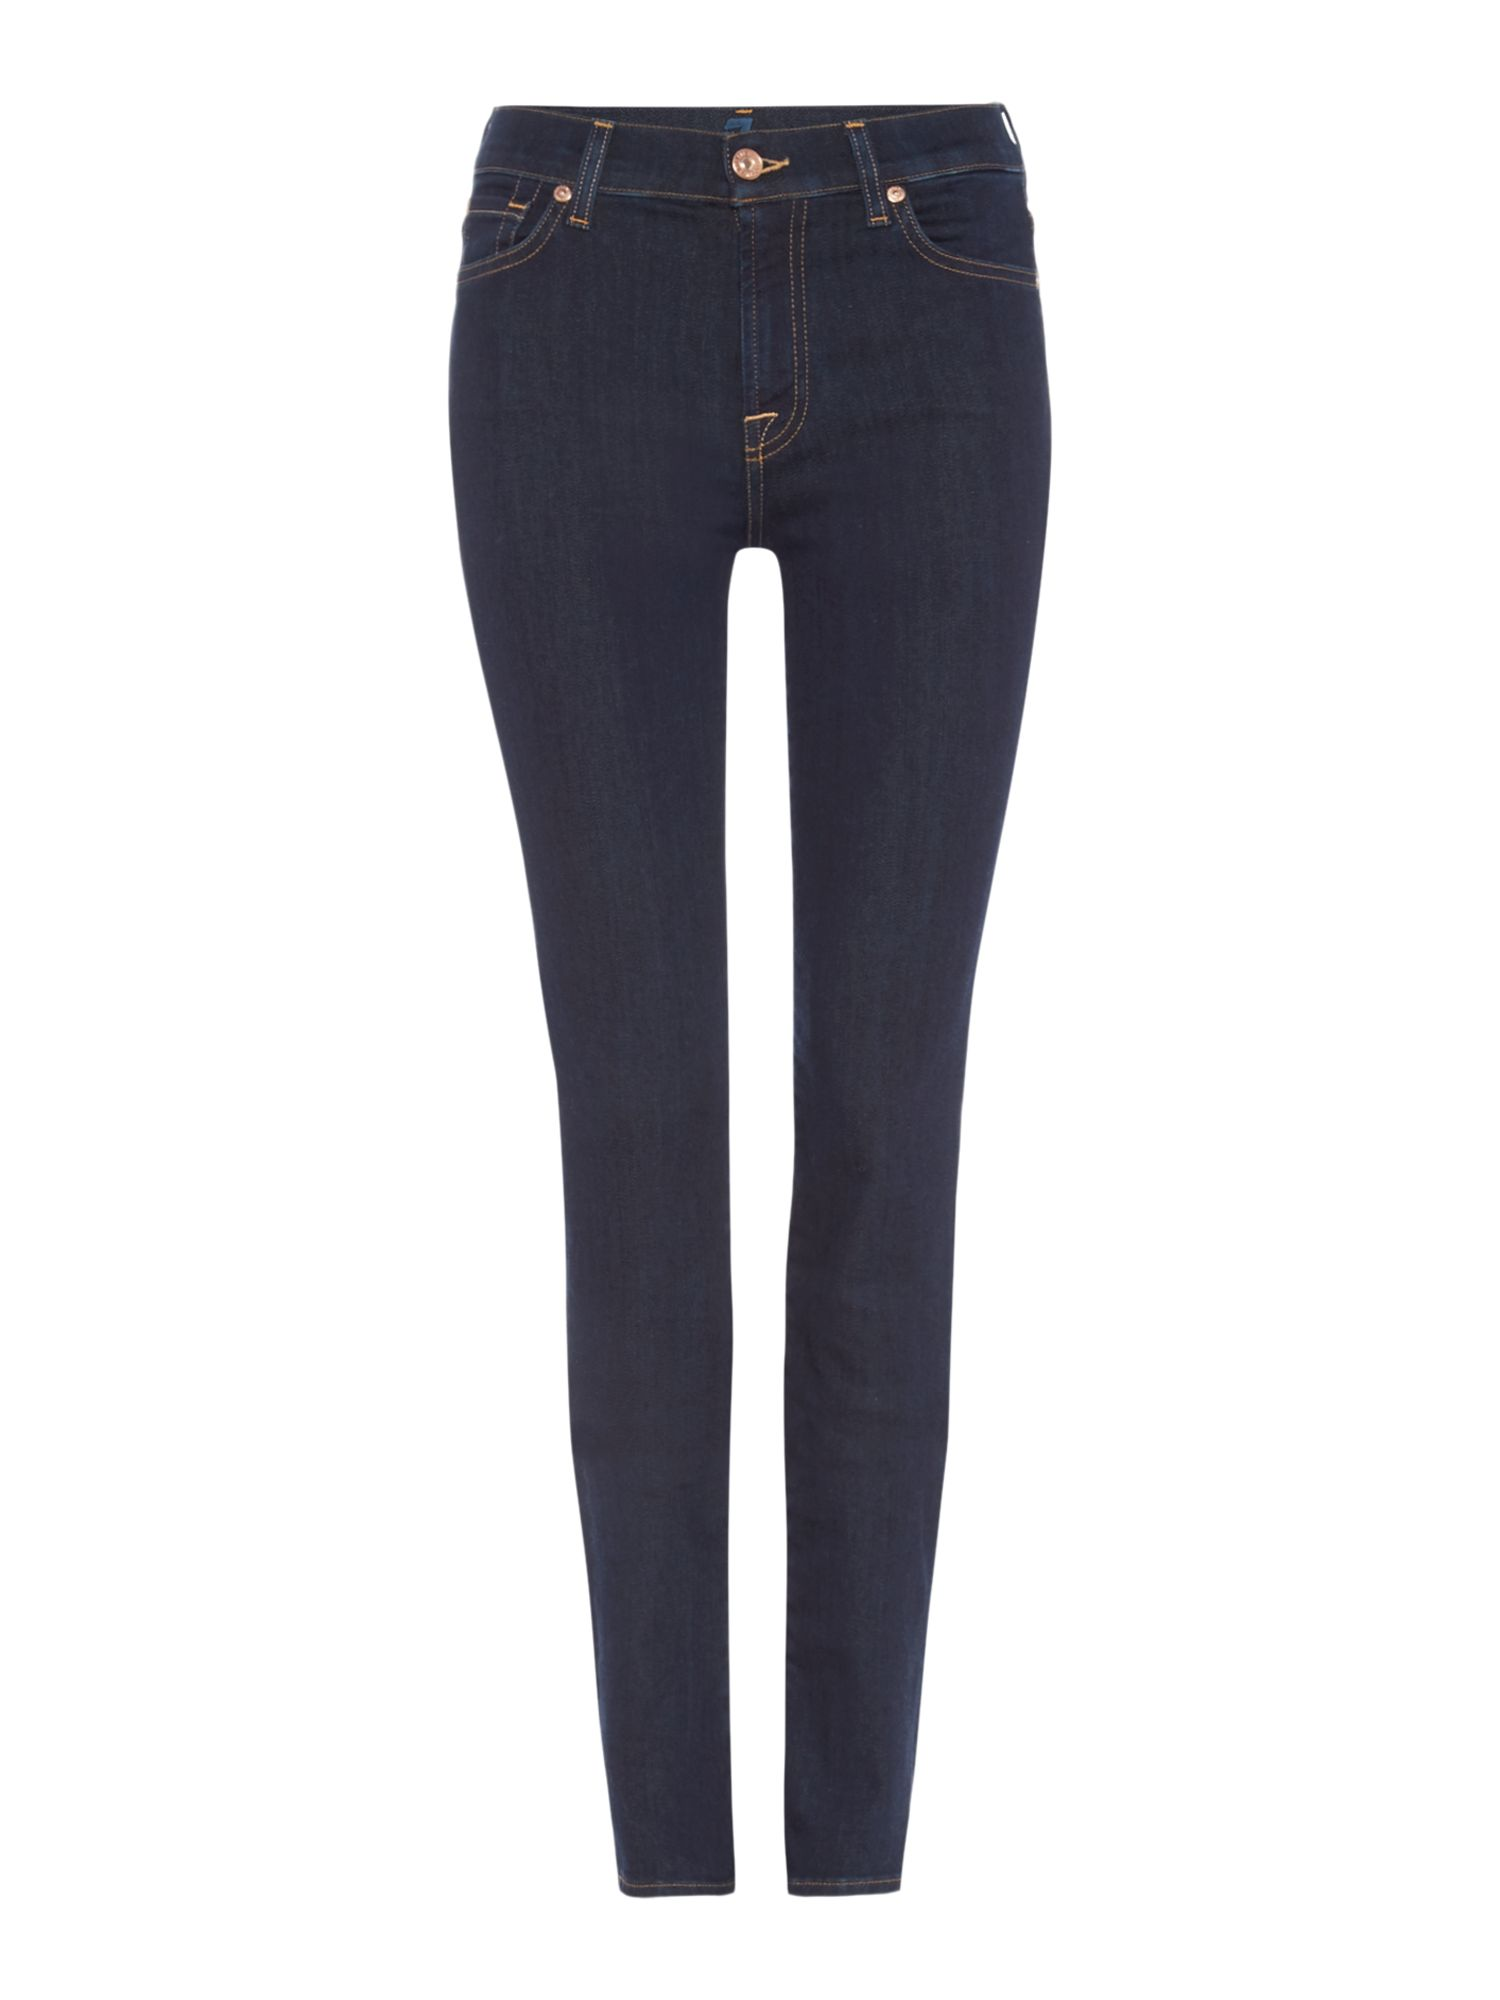 7 For All Mankind 7 For All Mankind Rozie high rise skinny jeans in long beach dark, Denim Dark Wash